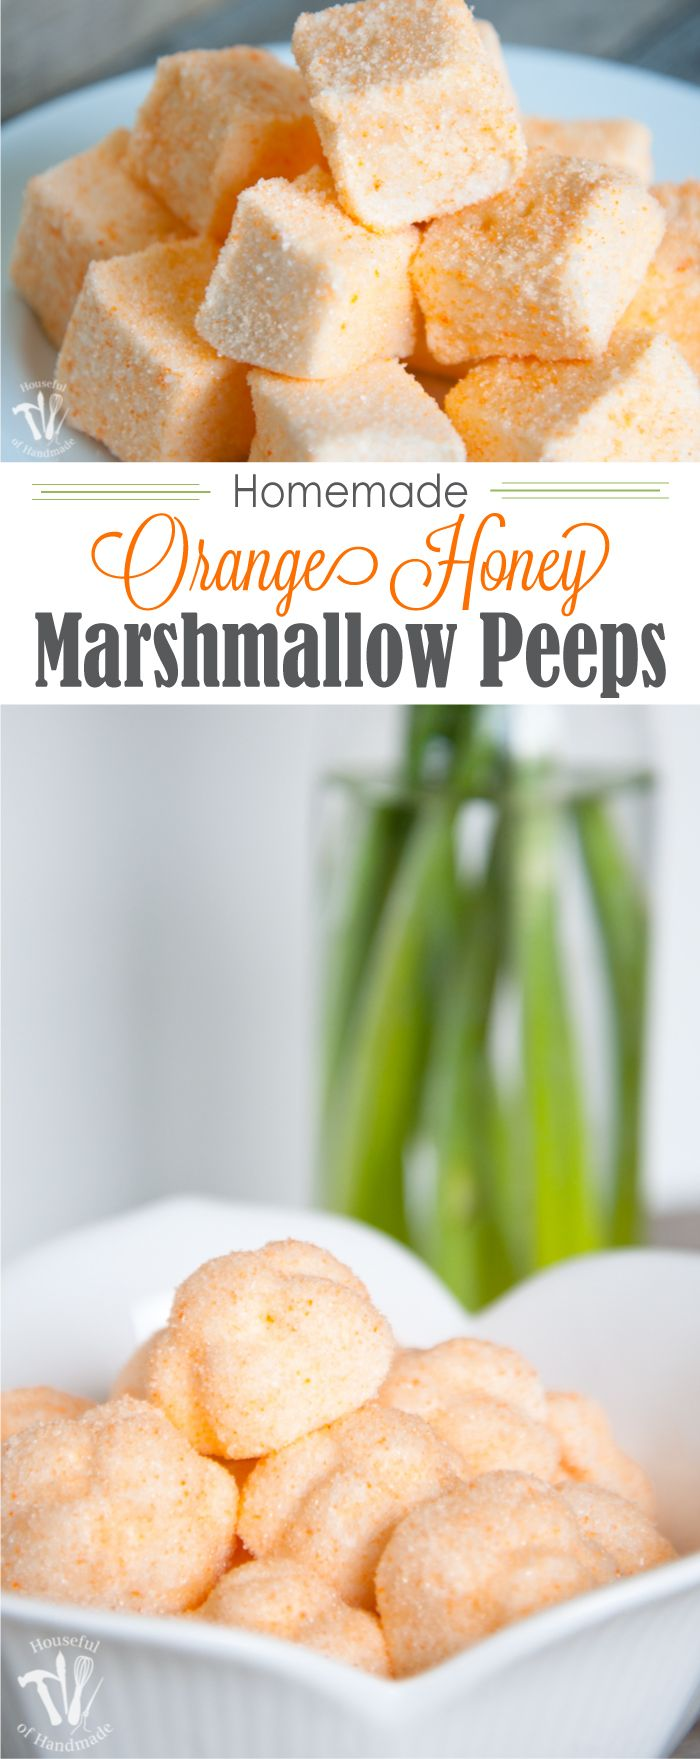 Who says Peeps are only for Easter? Celebrate spring with these delicious Homemade Orange Honey Marshmallow Peeps. These fancier homemade marshmallows are the perfect spring treat. | Housefulofhandmade.com